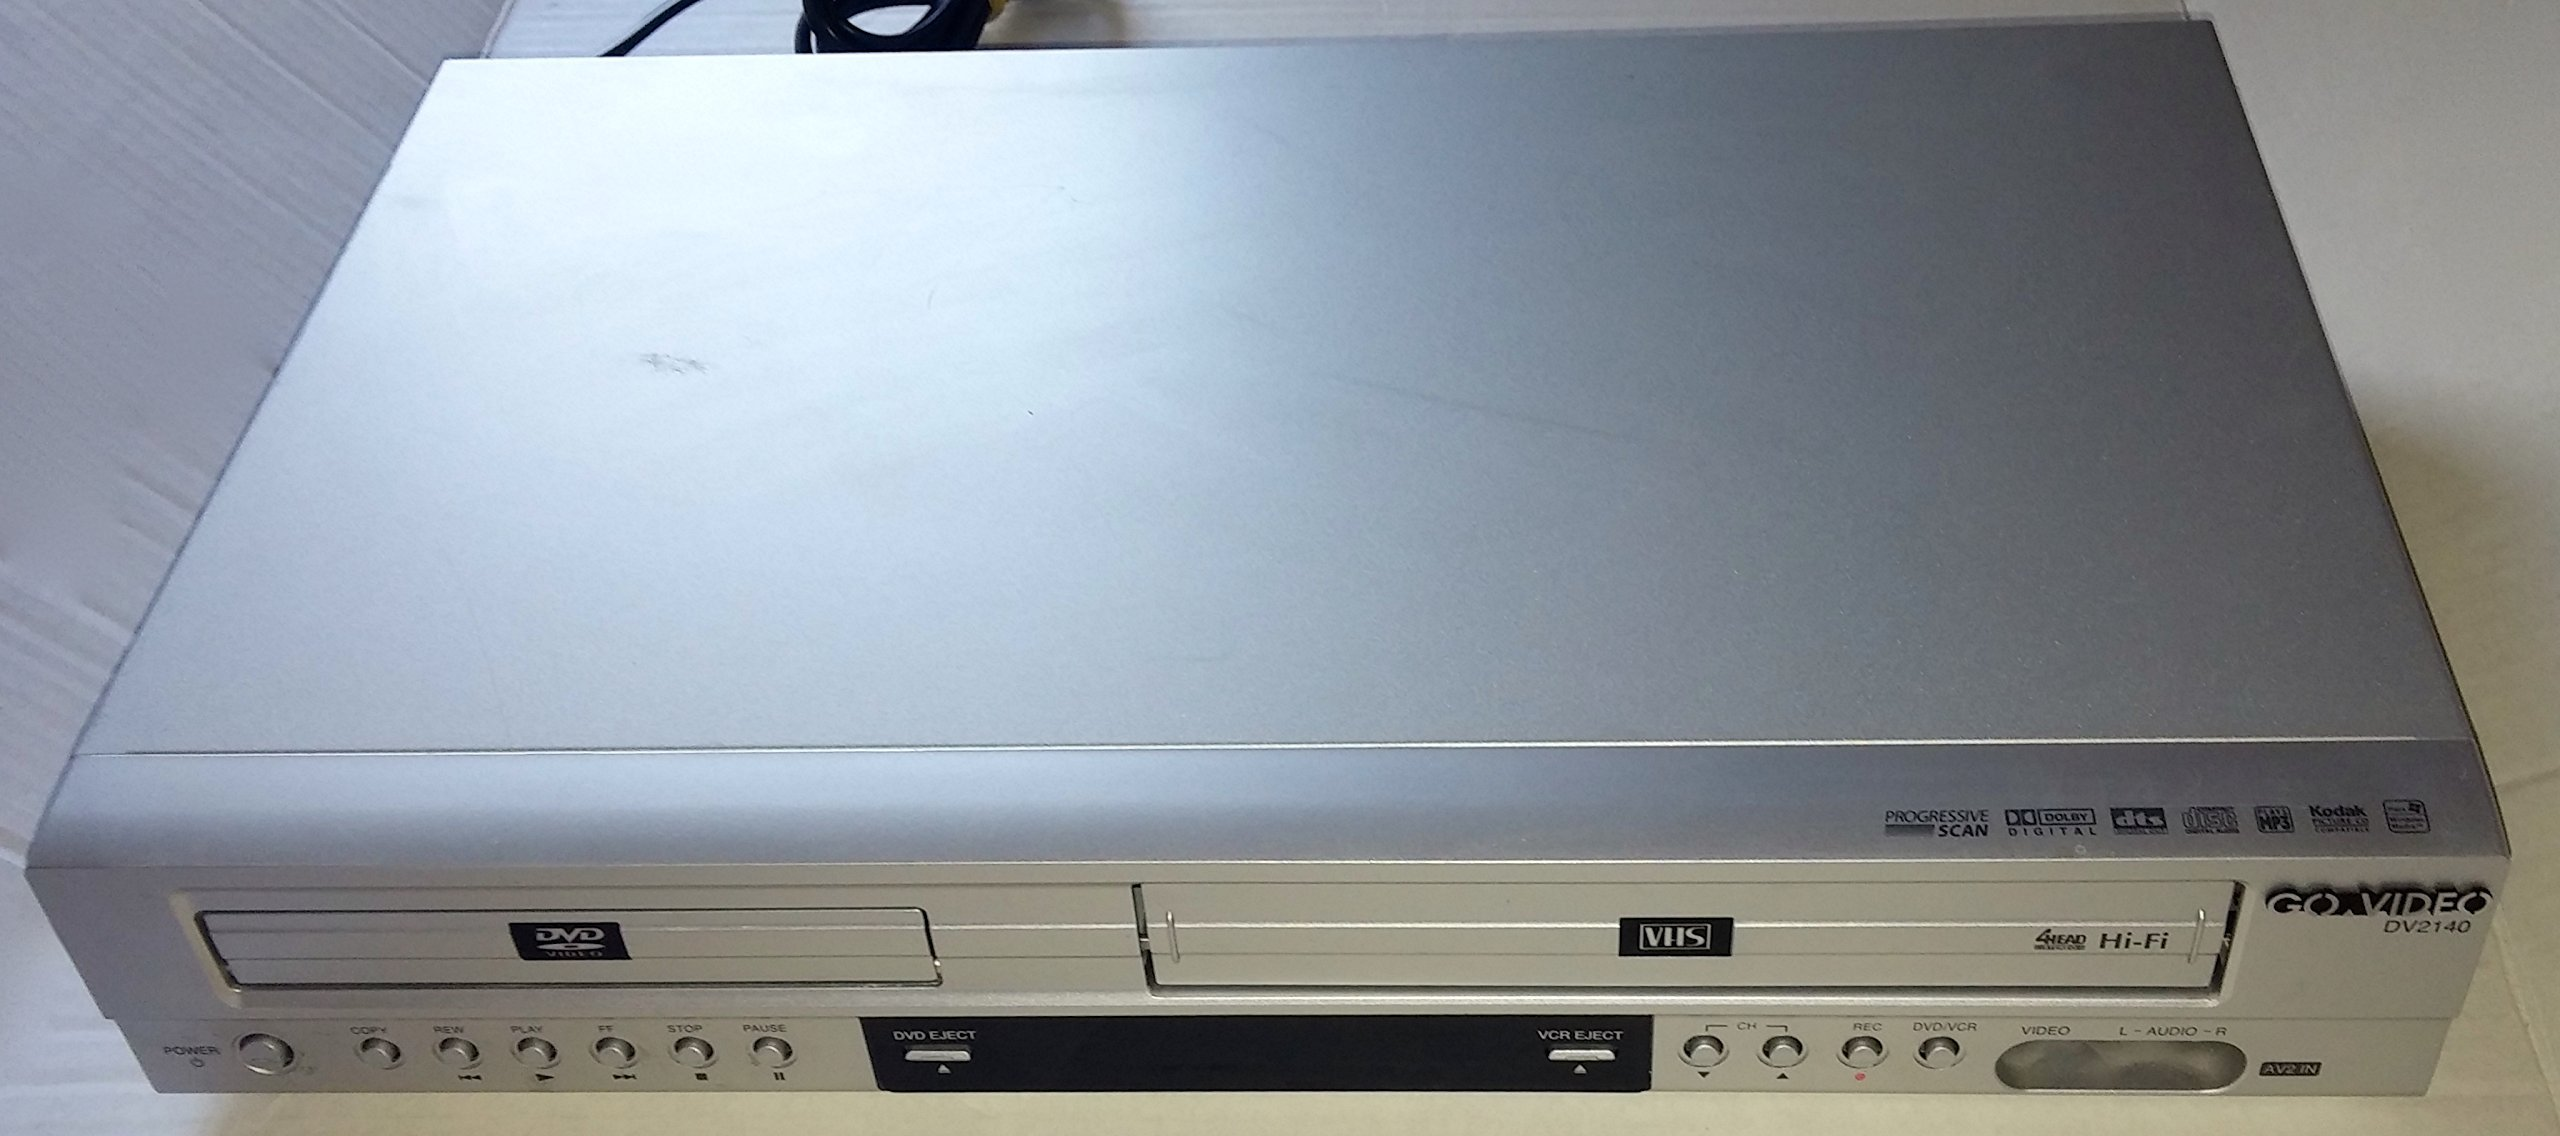 GoVideo DV2140 DVD/VCR Combo Player/Recorder by Go Video